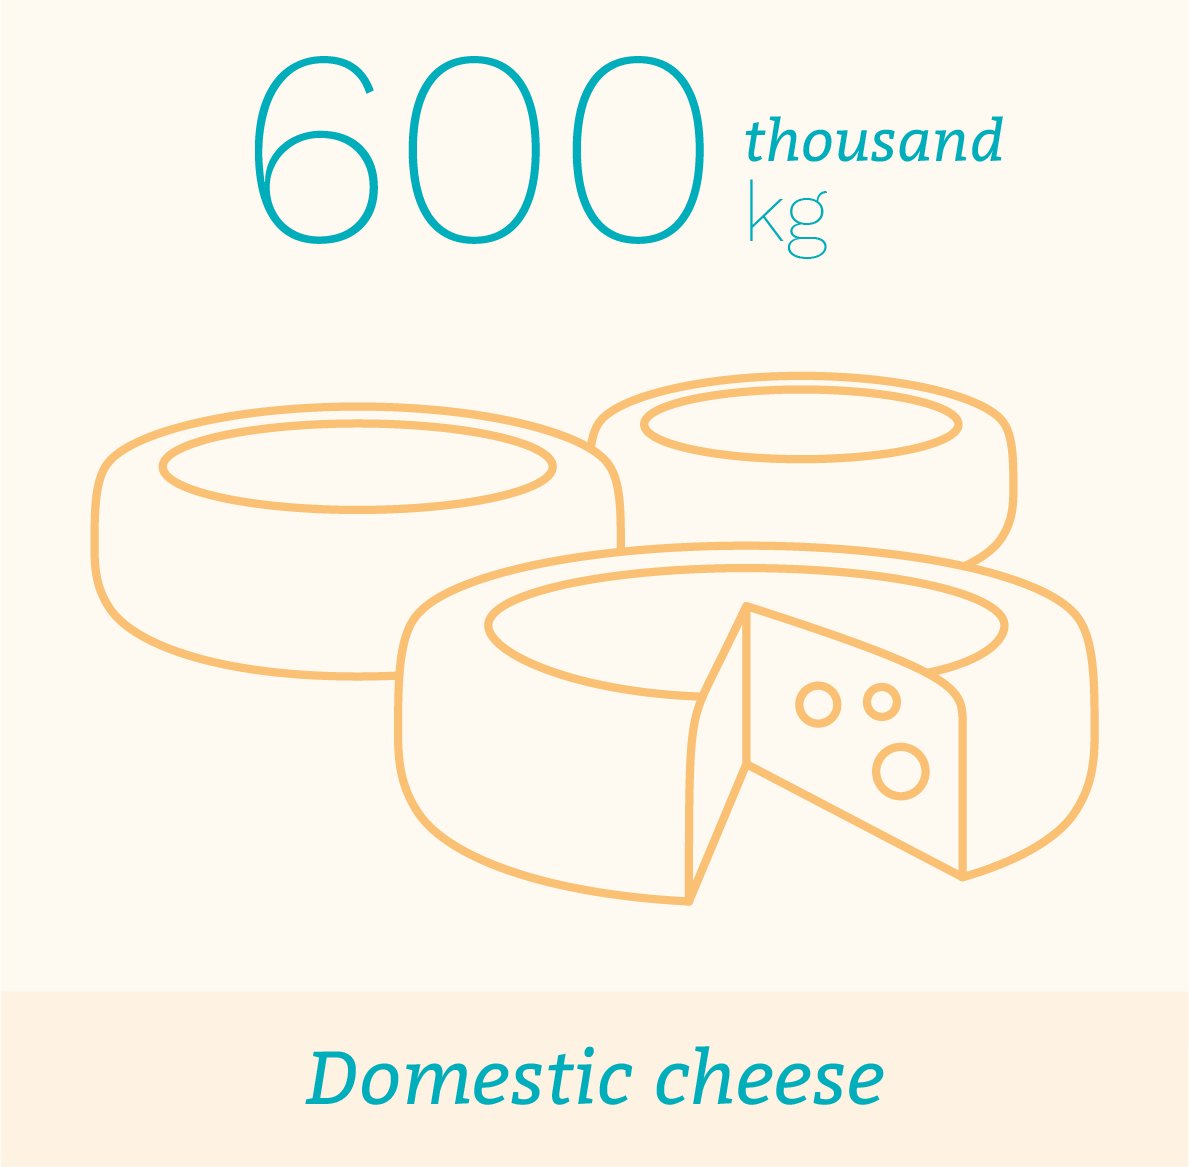 Domestic cheese